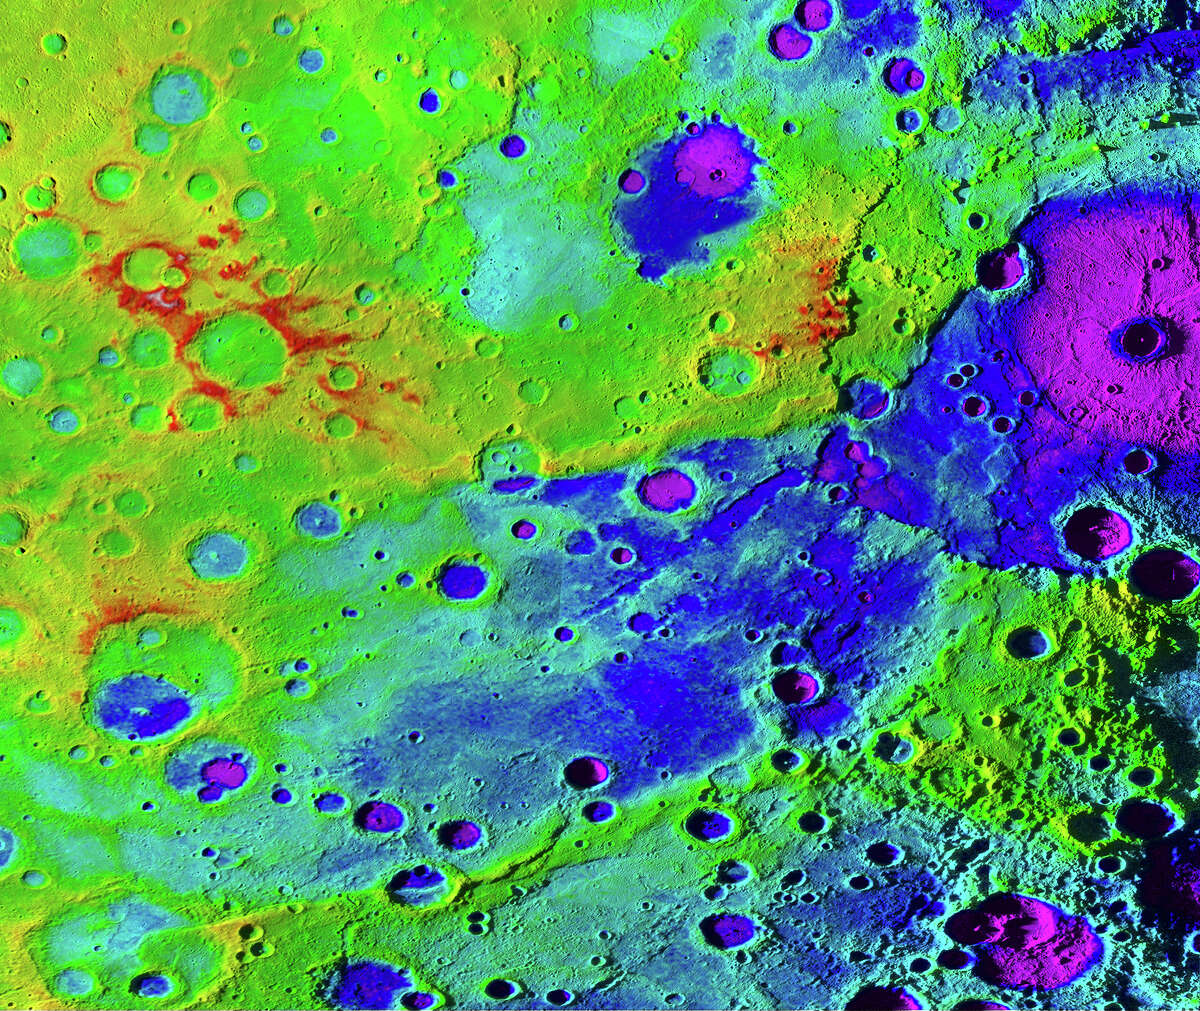 Scientists at NASA recently found evidence that points to the fact that Mercury may be shrinking. Click through to see NASA's first planetary flybys.